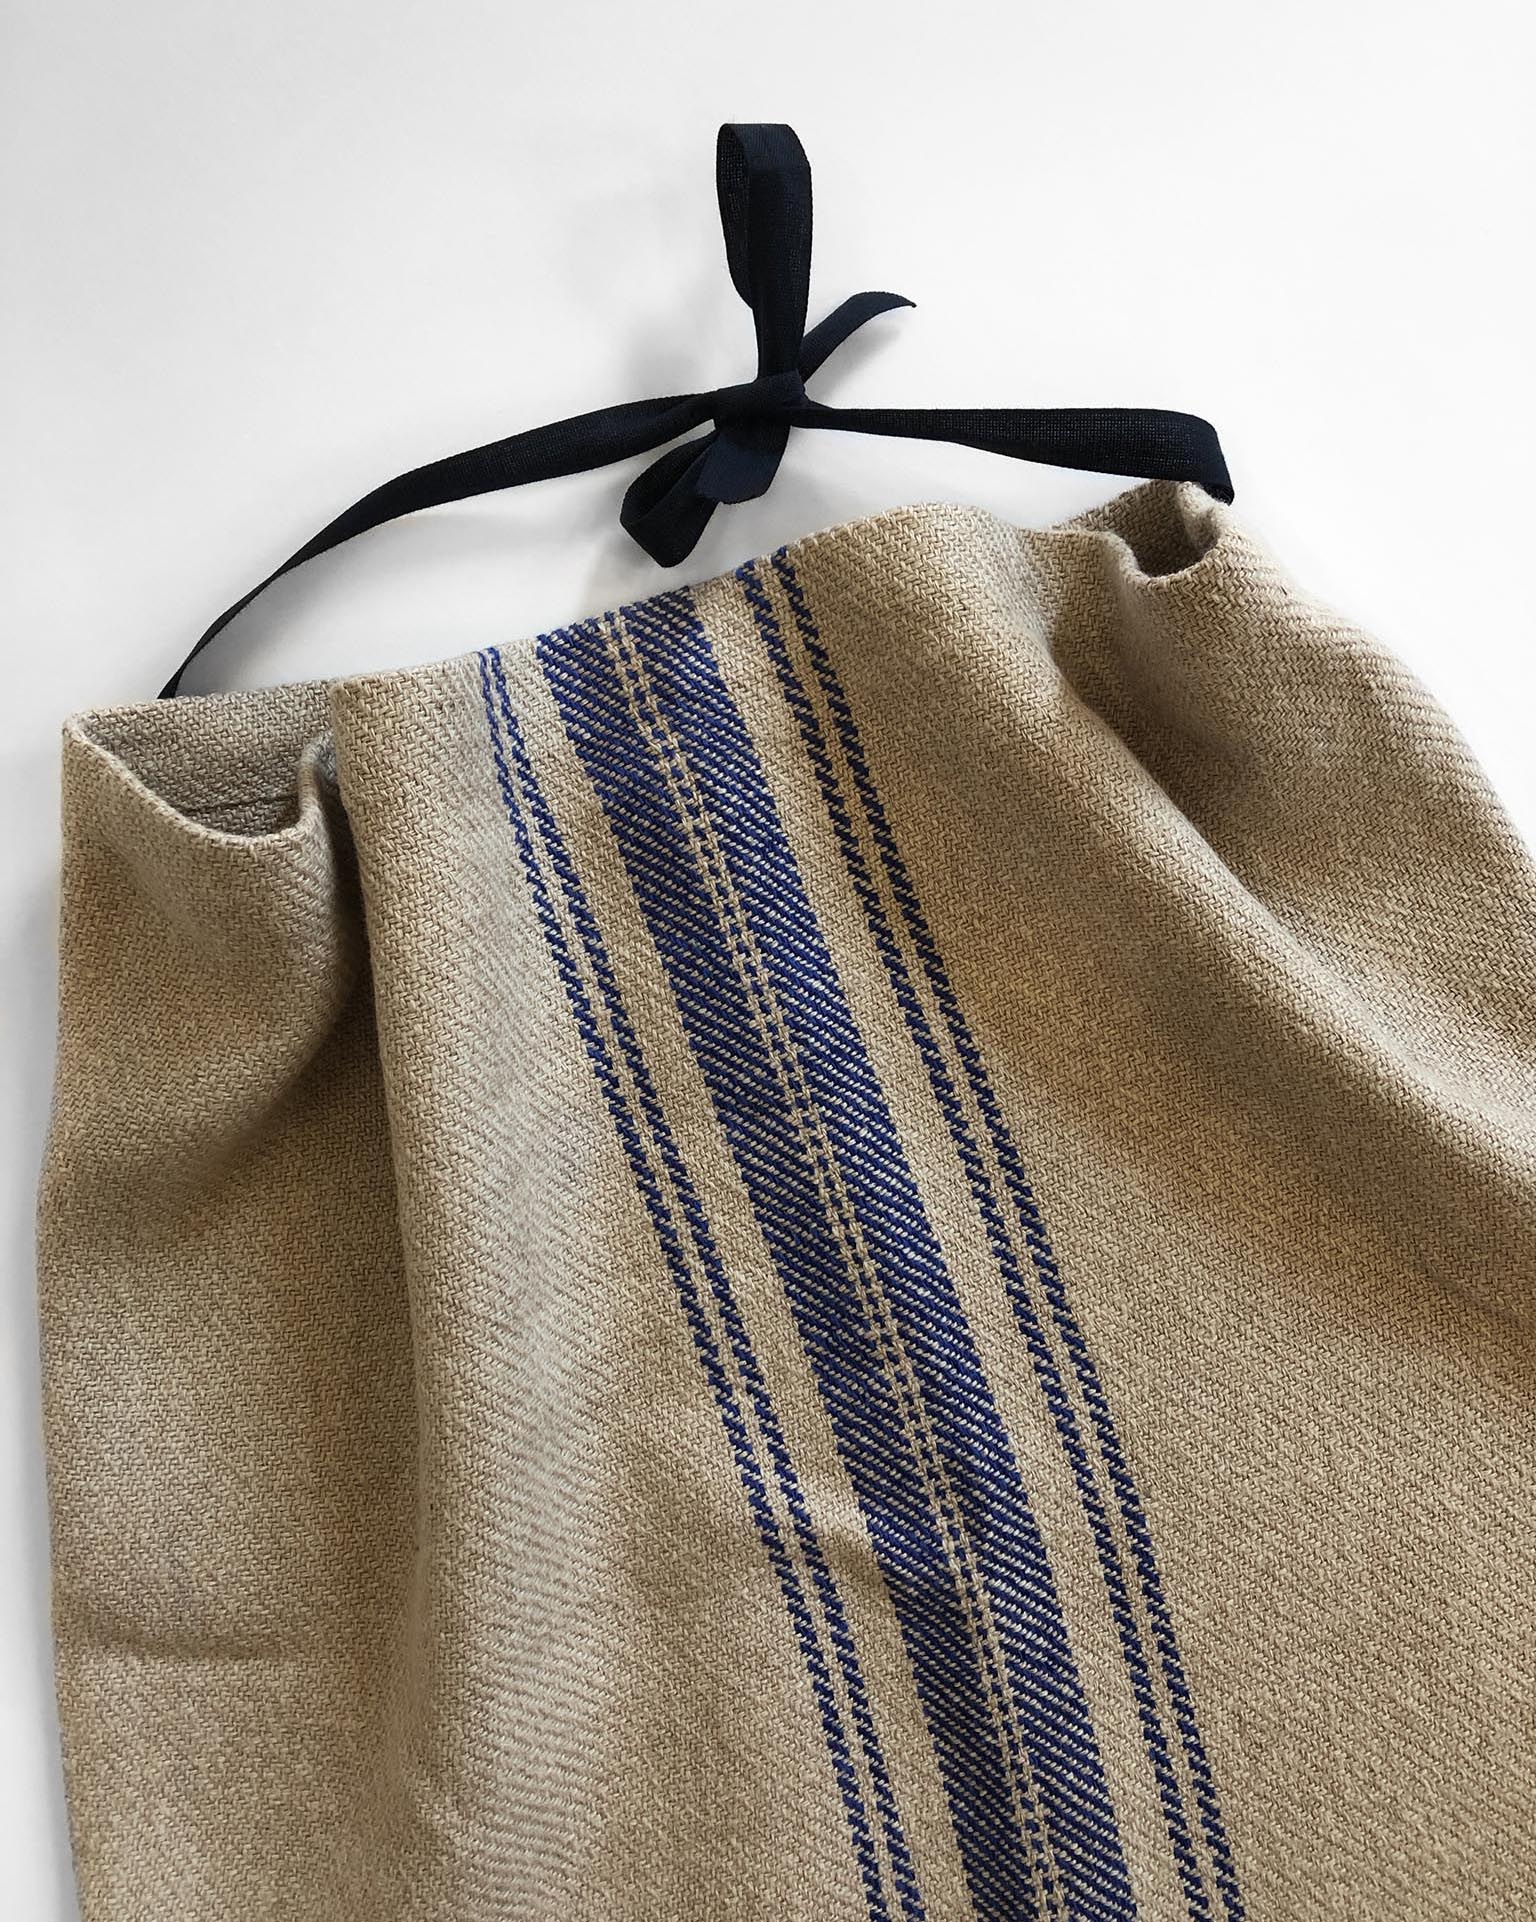 Handwoven Apron and Towel Set Weaving Pattern